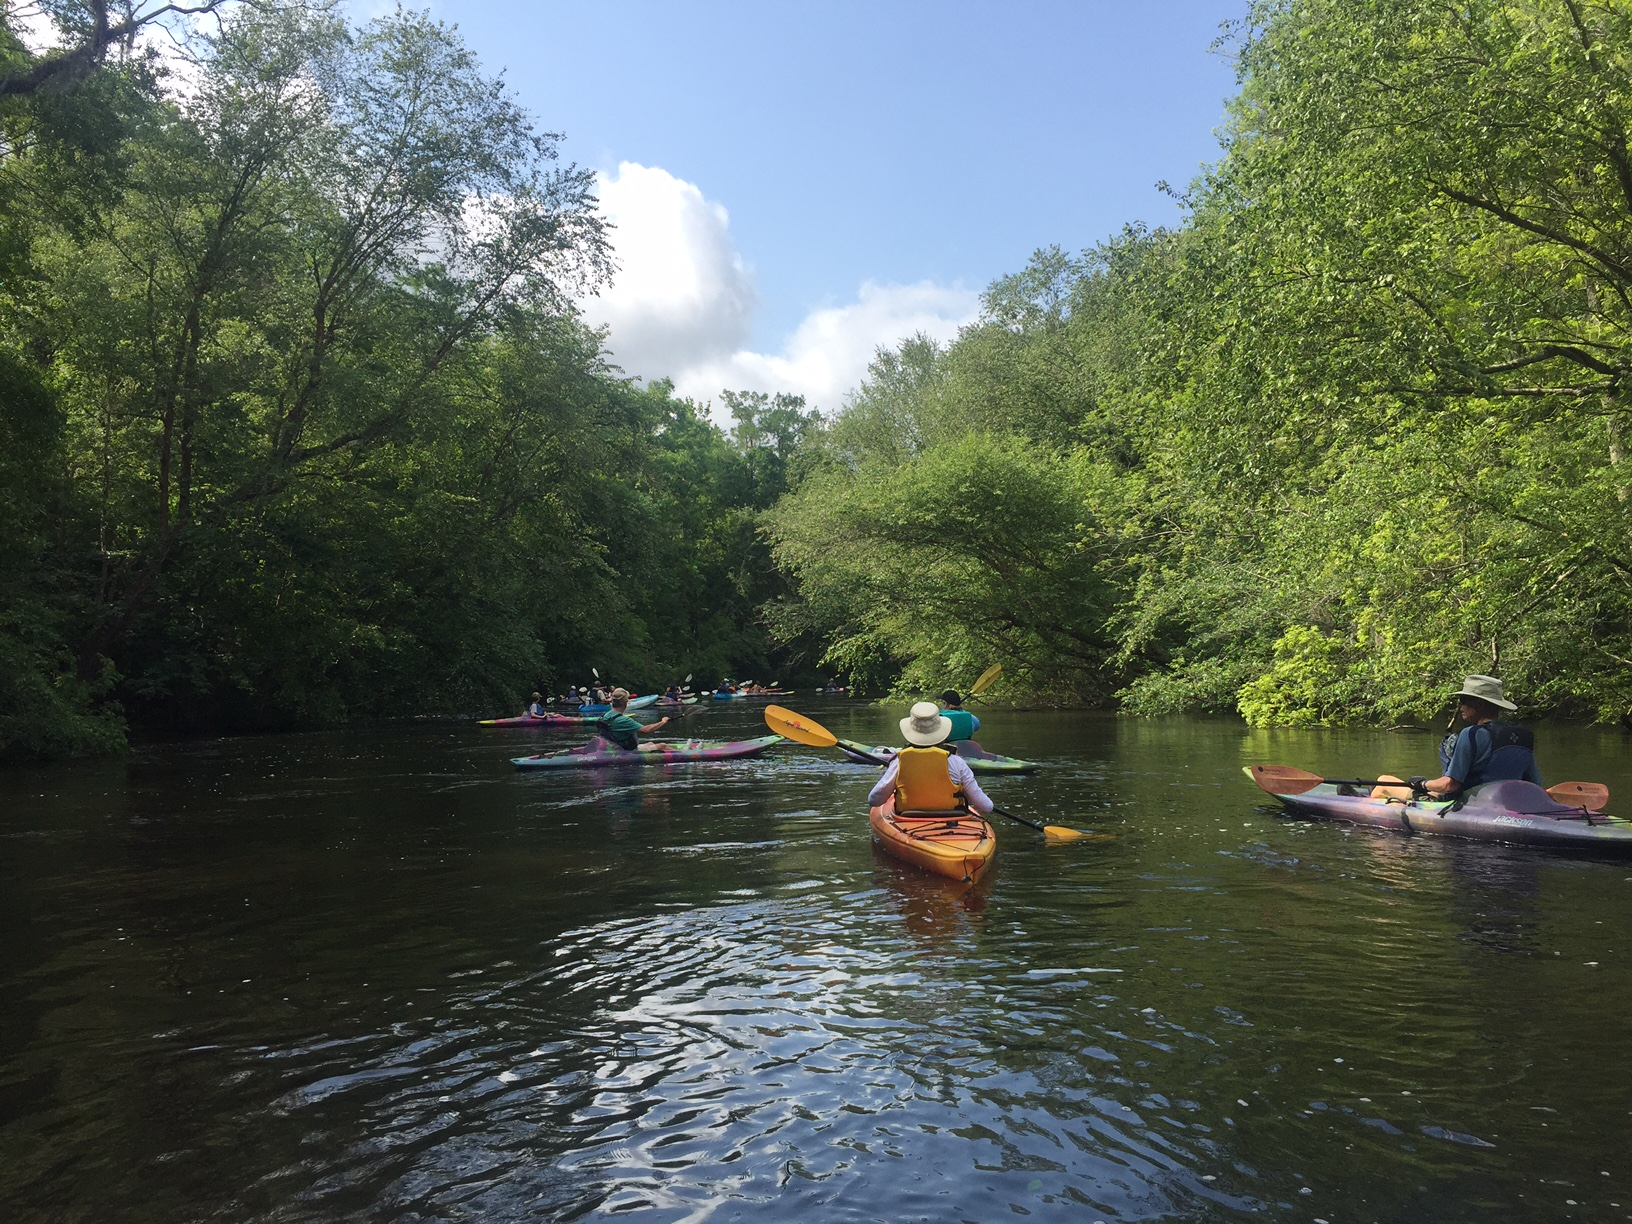 Sold Out! Black River Cypress Preserve Paddle - Saturday, May 15, 2021